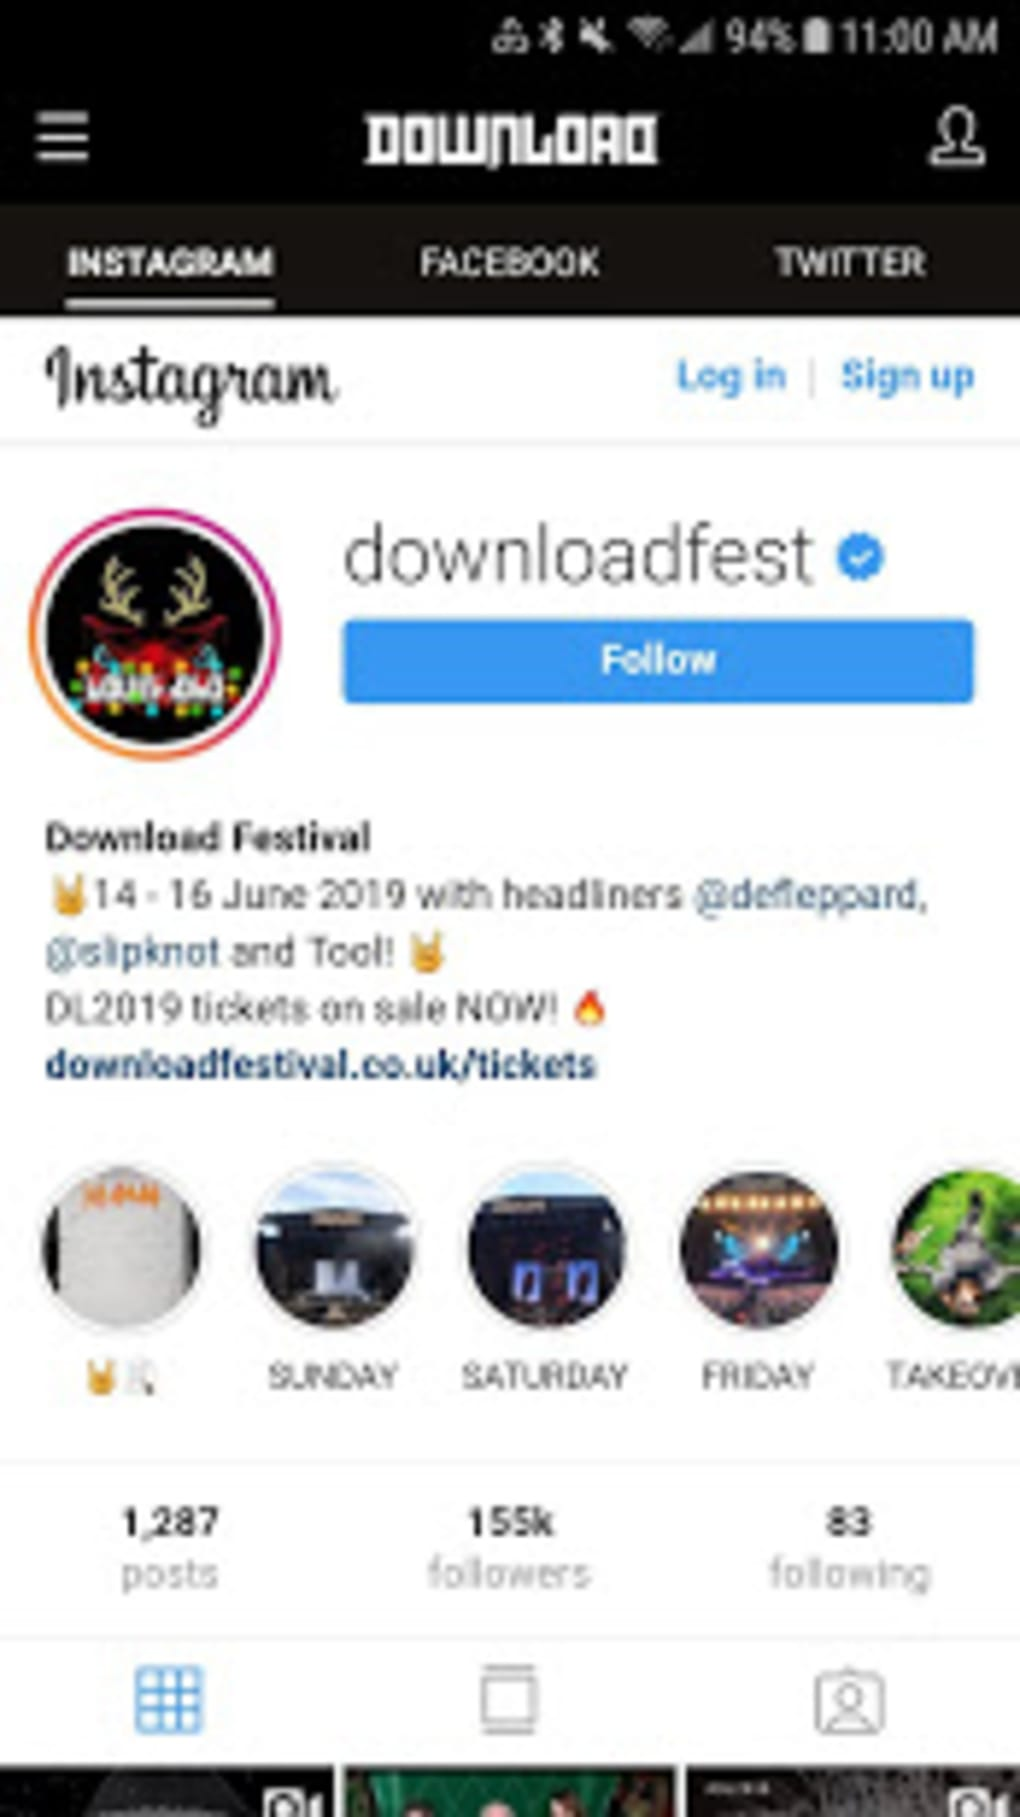 Download Festival for Android - Download